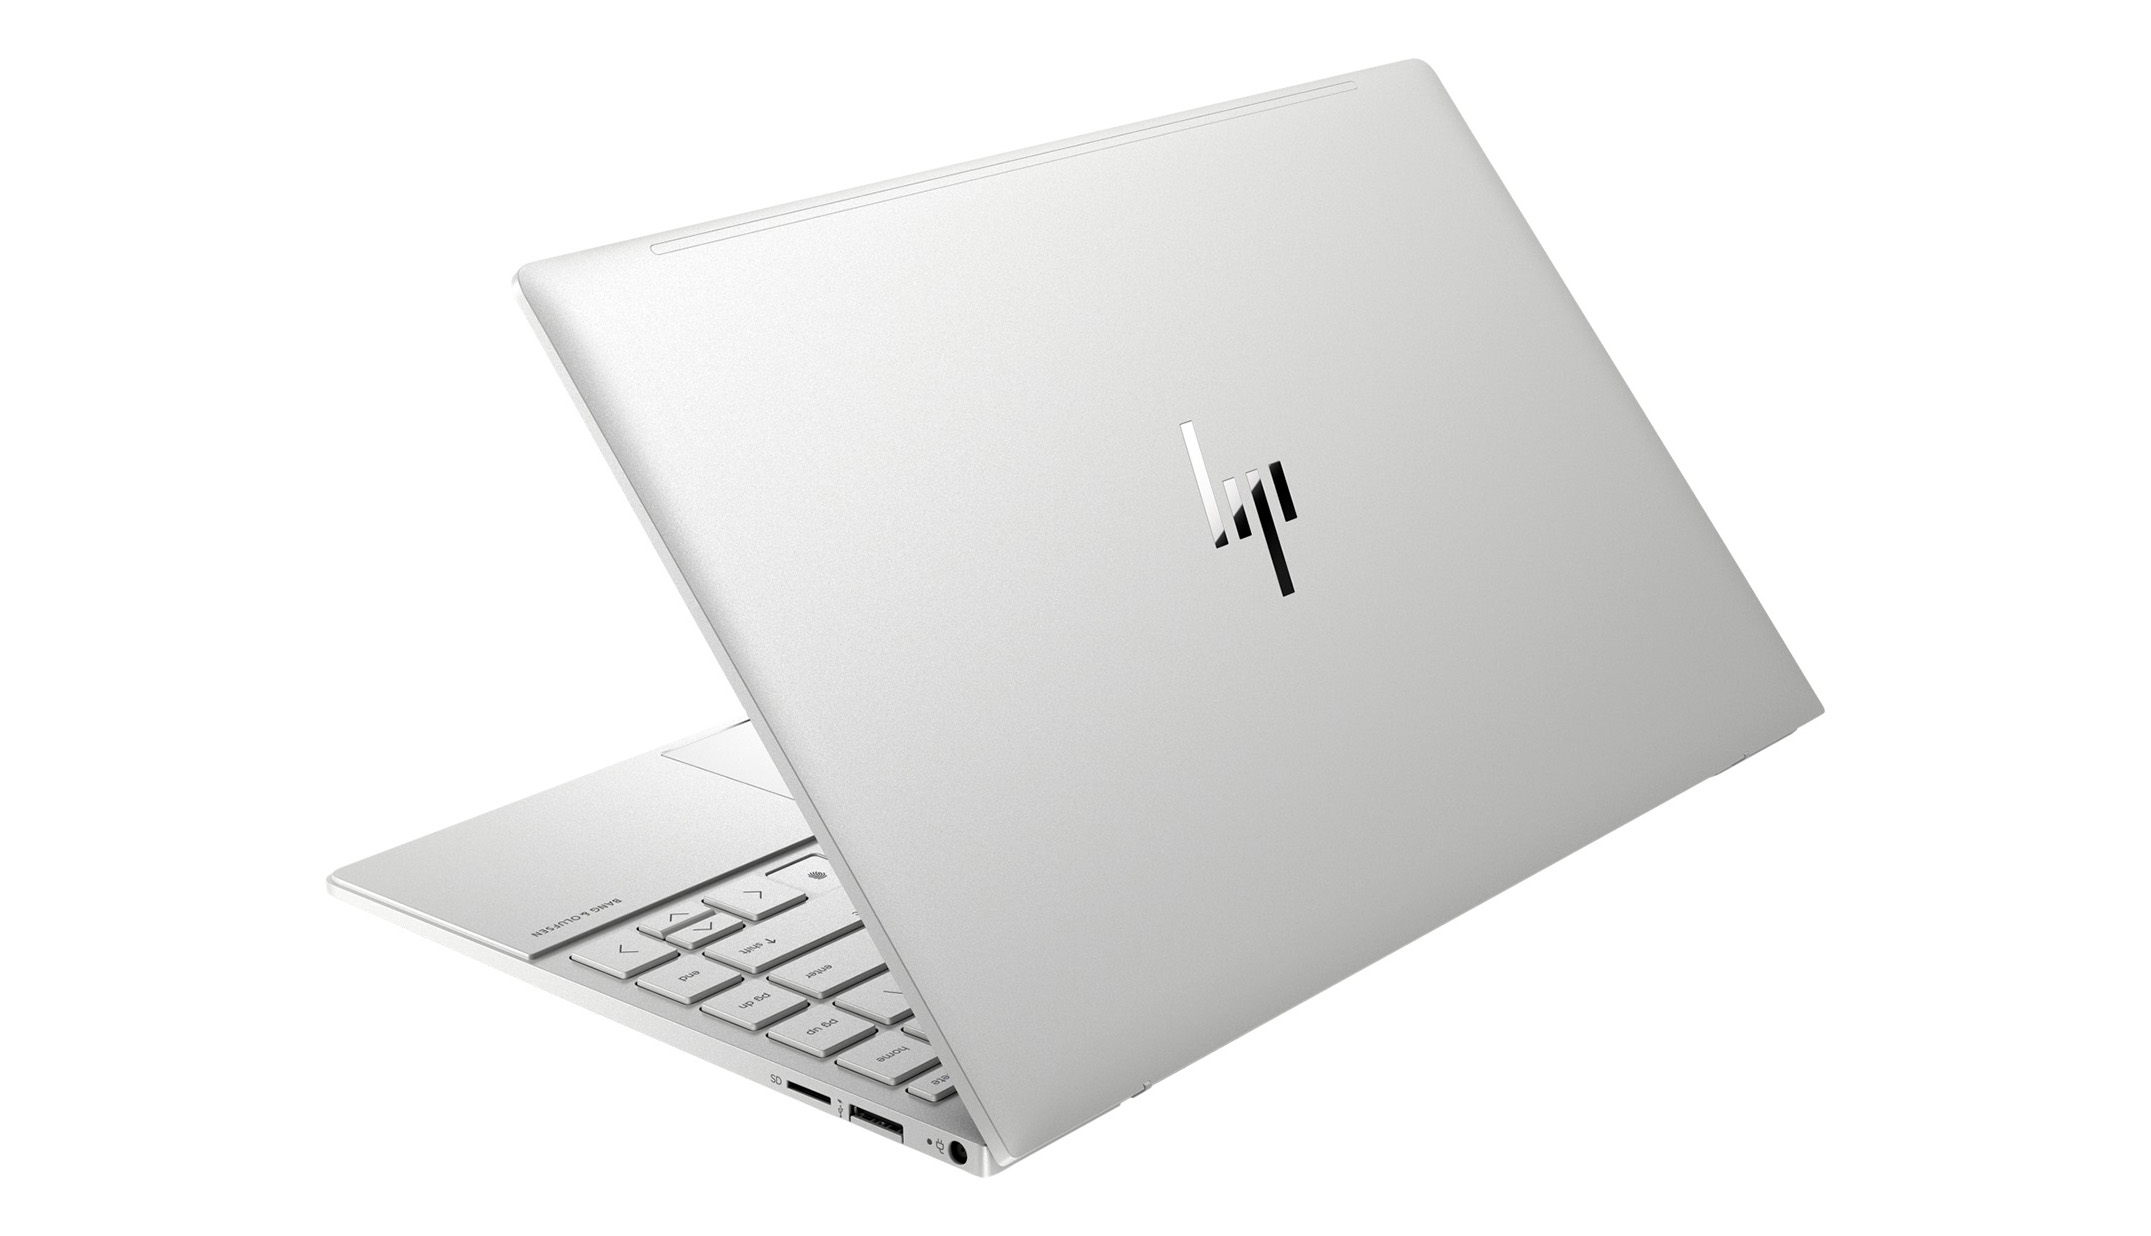 HP ENVY 13-ba0000nx Natural Silver